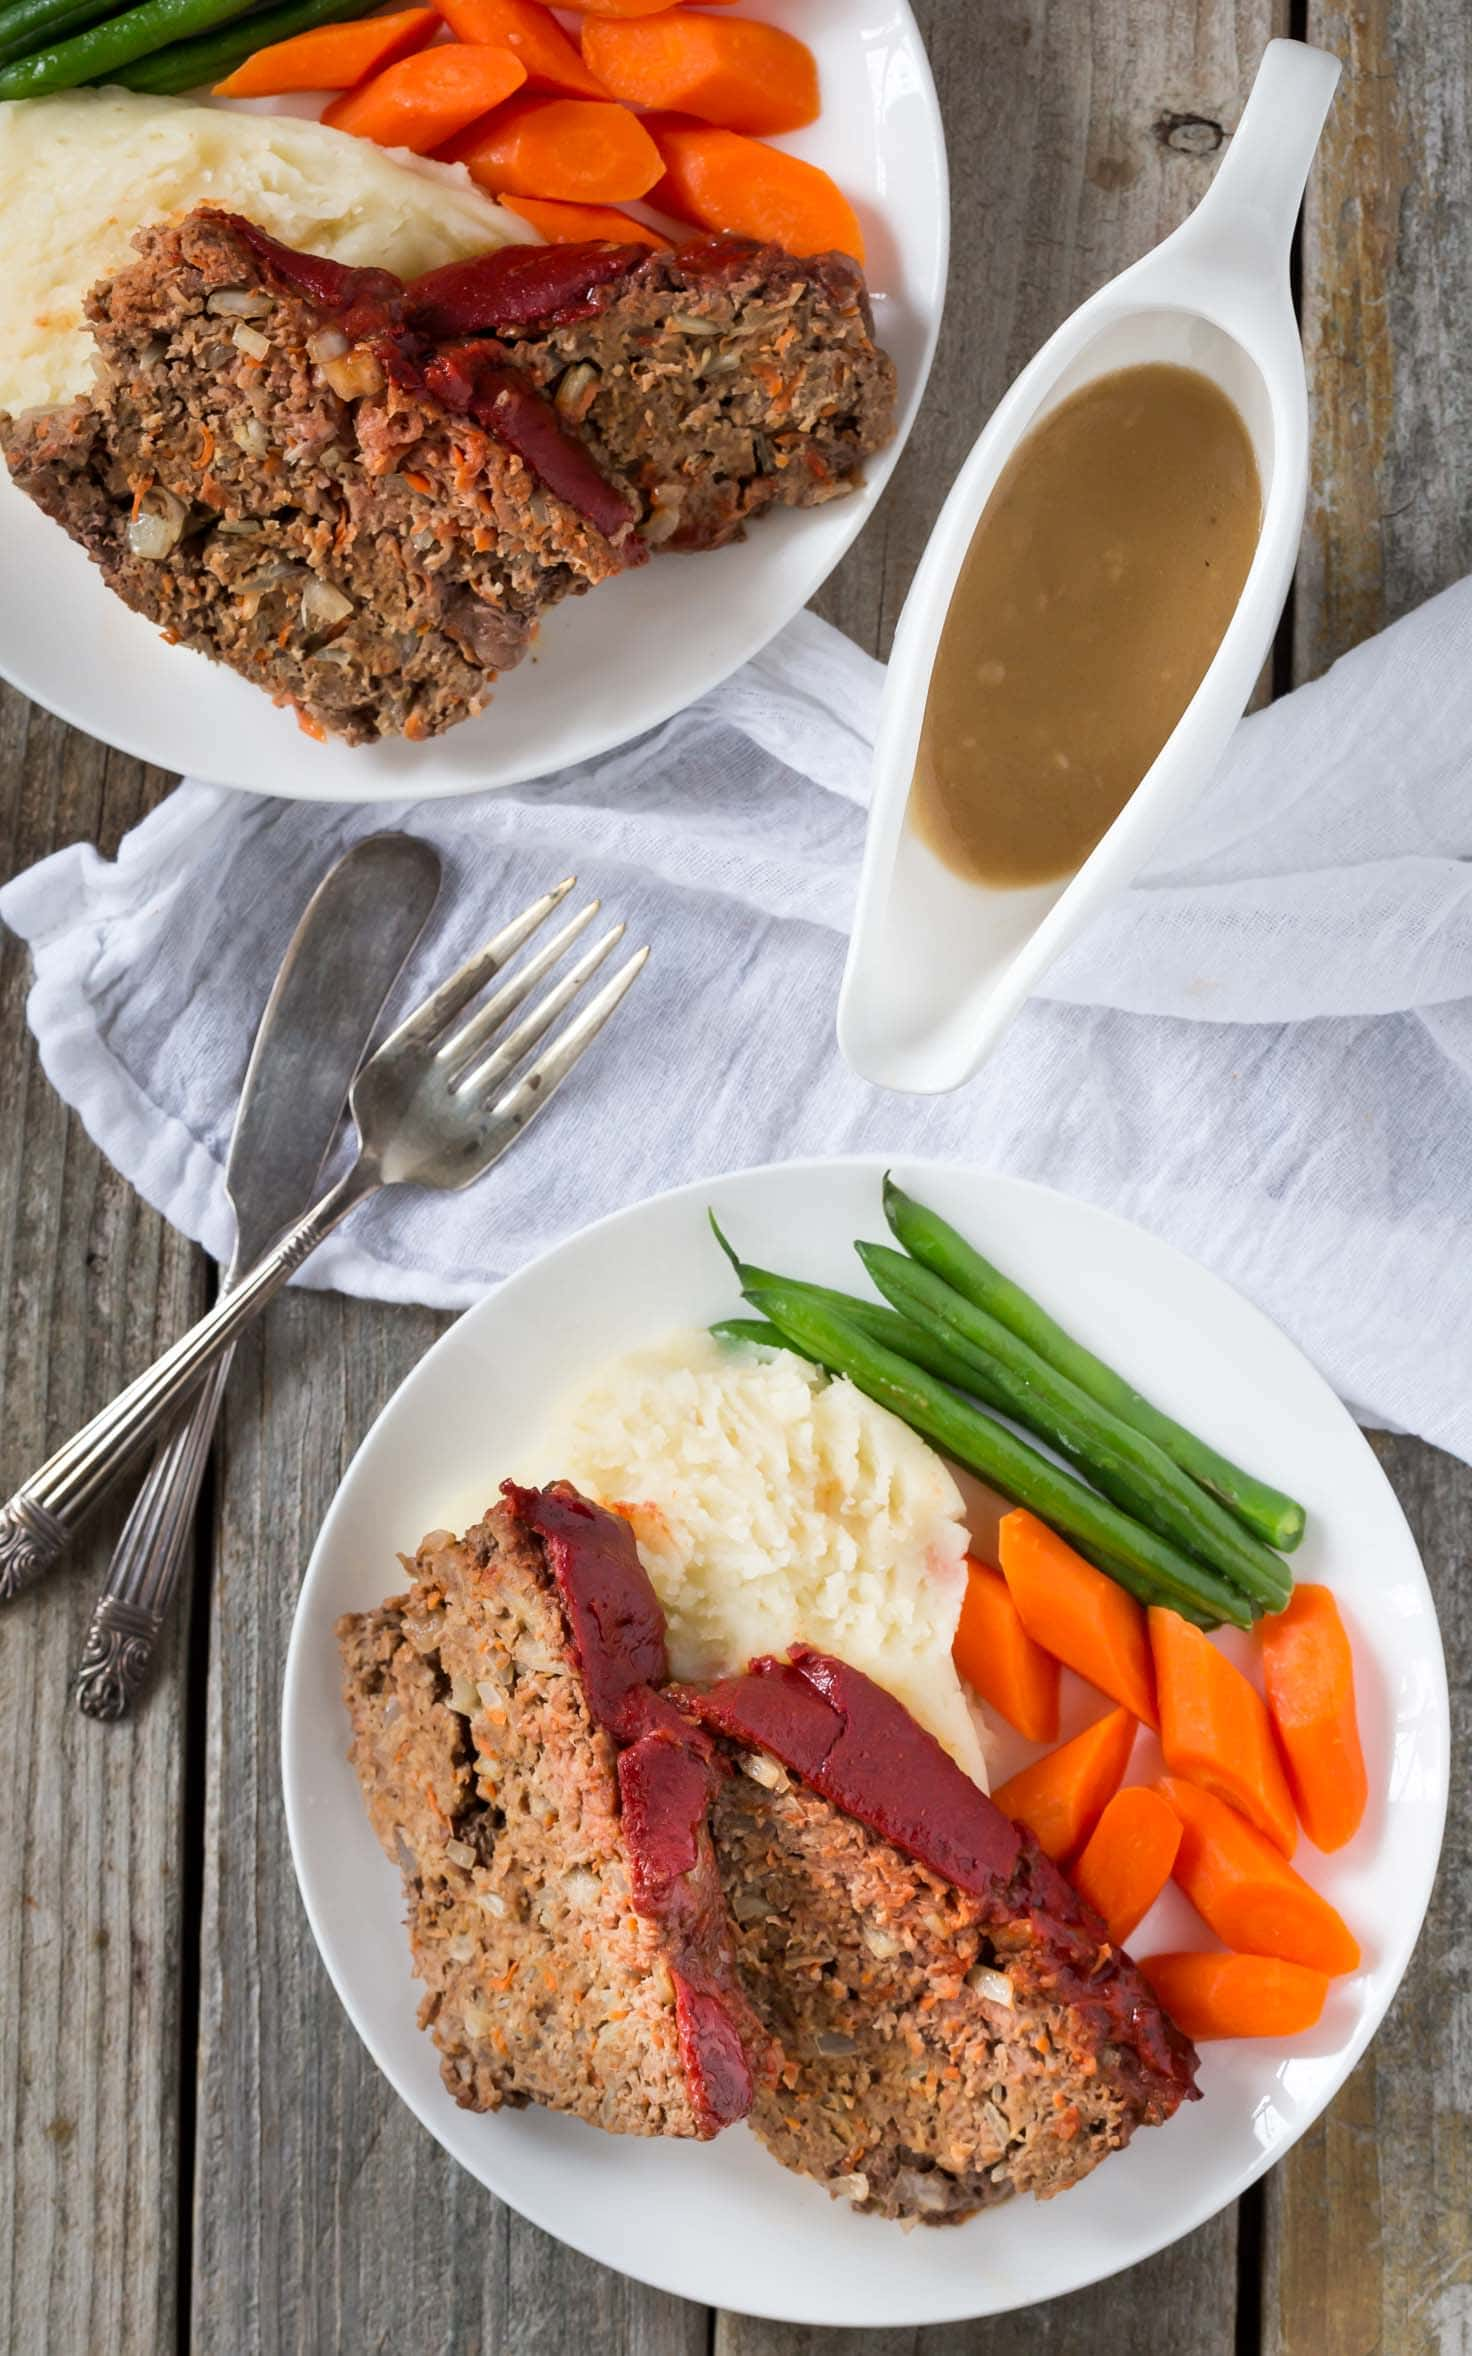 Perfect for a weeknight meal! This gluten free, Paleo and Whole30 Meatloaf is packed with flavor and added vegetables! Make it with beef, pork or turkey